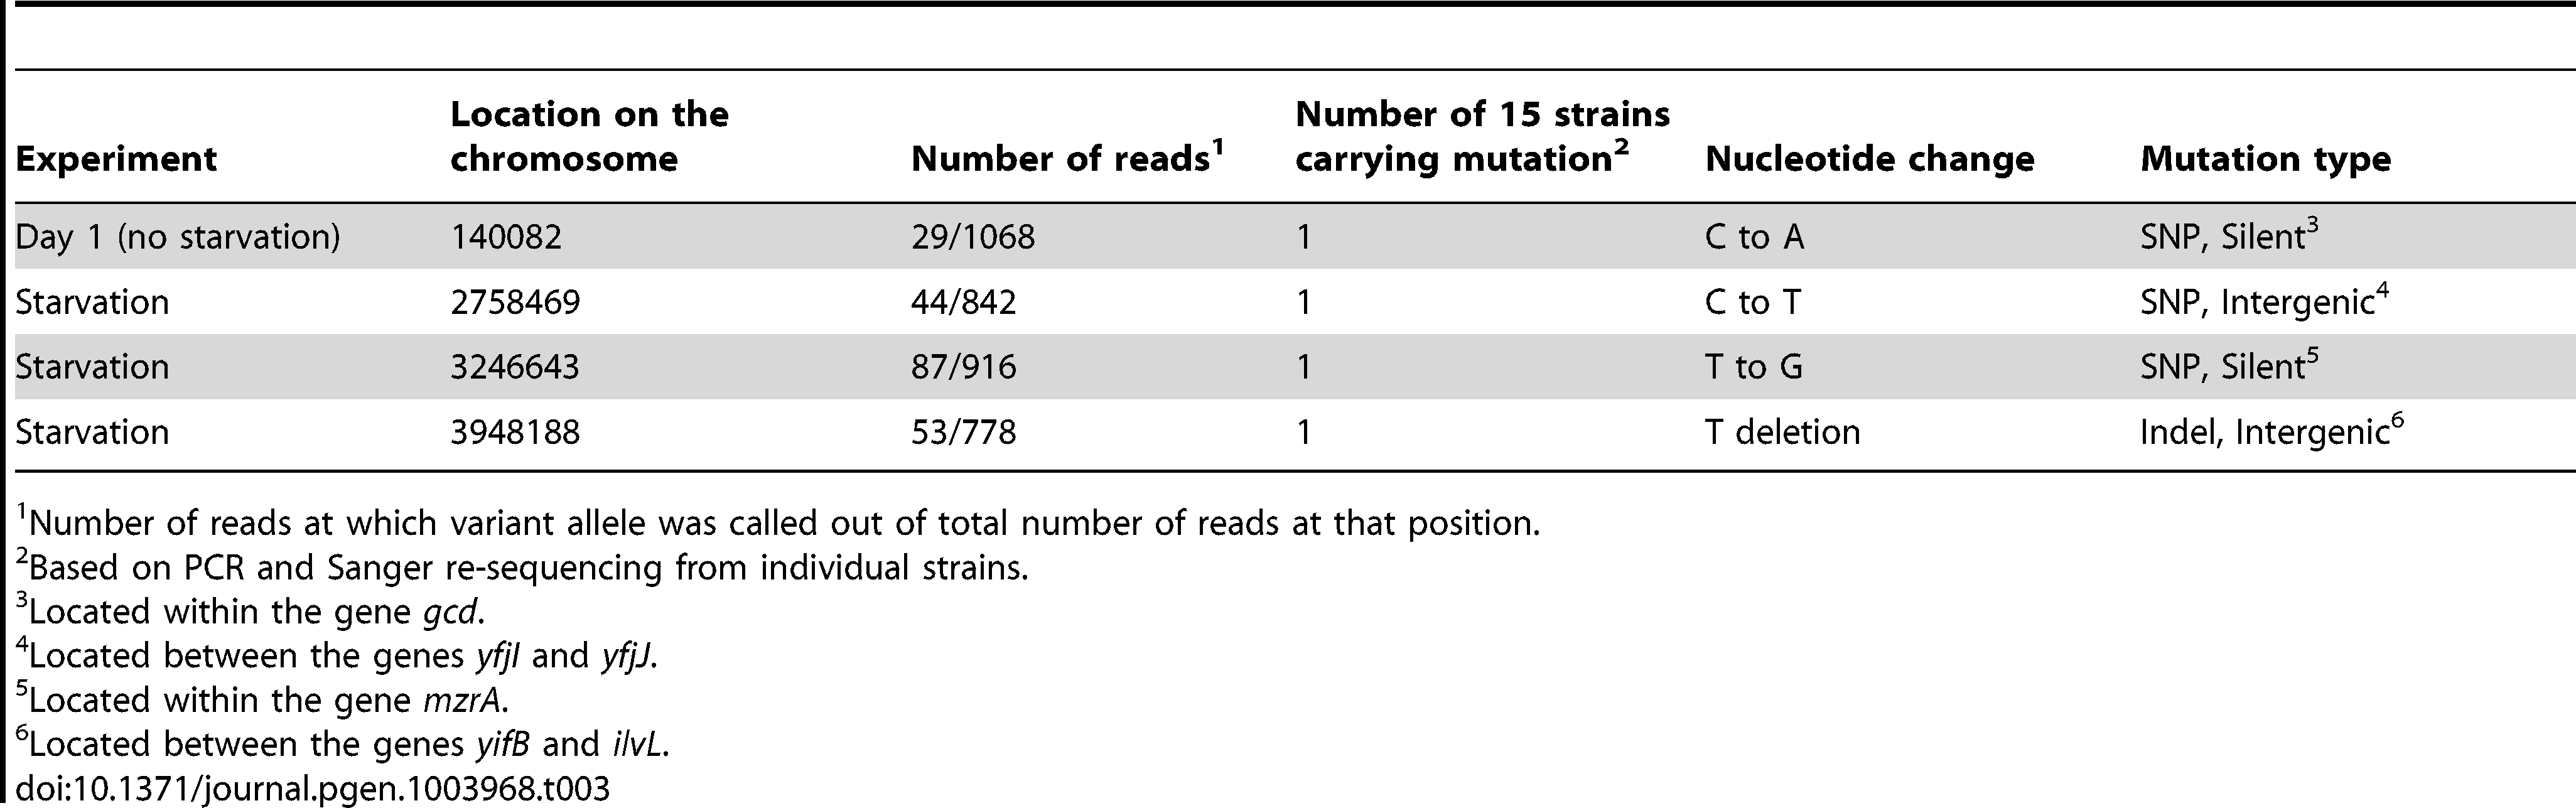 Mutations identified in 15 non-starved and 15 starved isolates, untested for resistance.